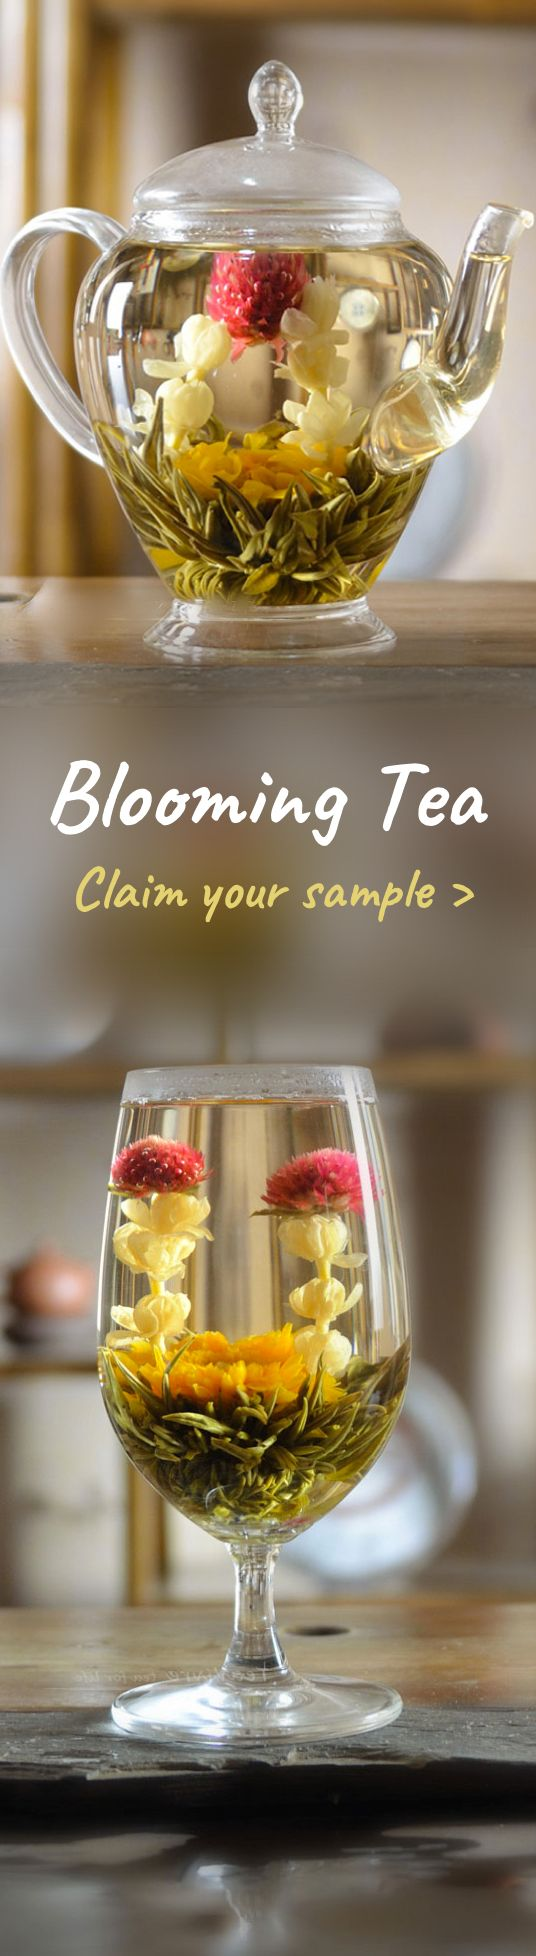 We are giving away FREE samples of our organic blooming tea. It's a great Christmas gift idea for Tea lovers, or for hosting a dinner party. Claim yours now >